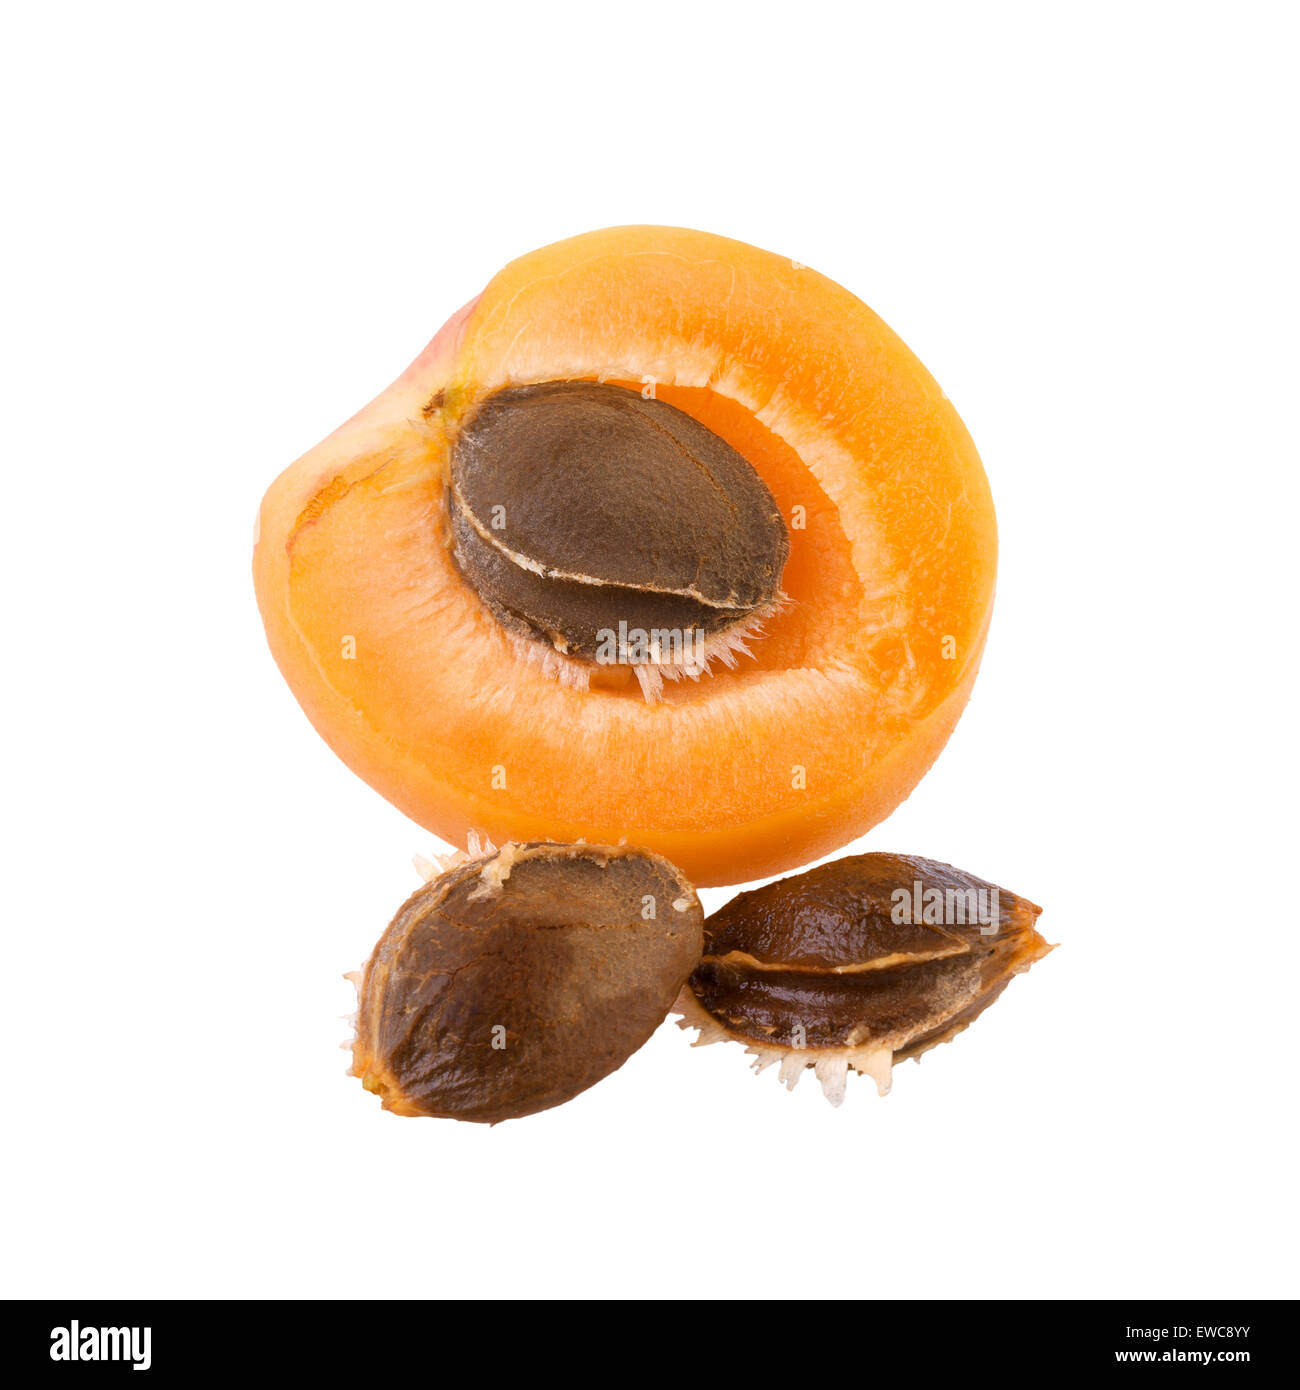 Apricot half with core - Stock Image